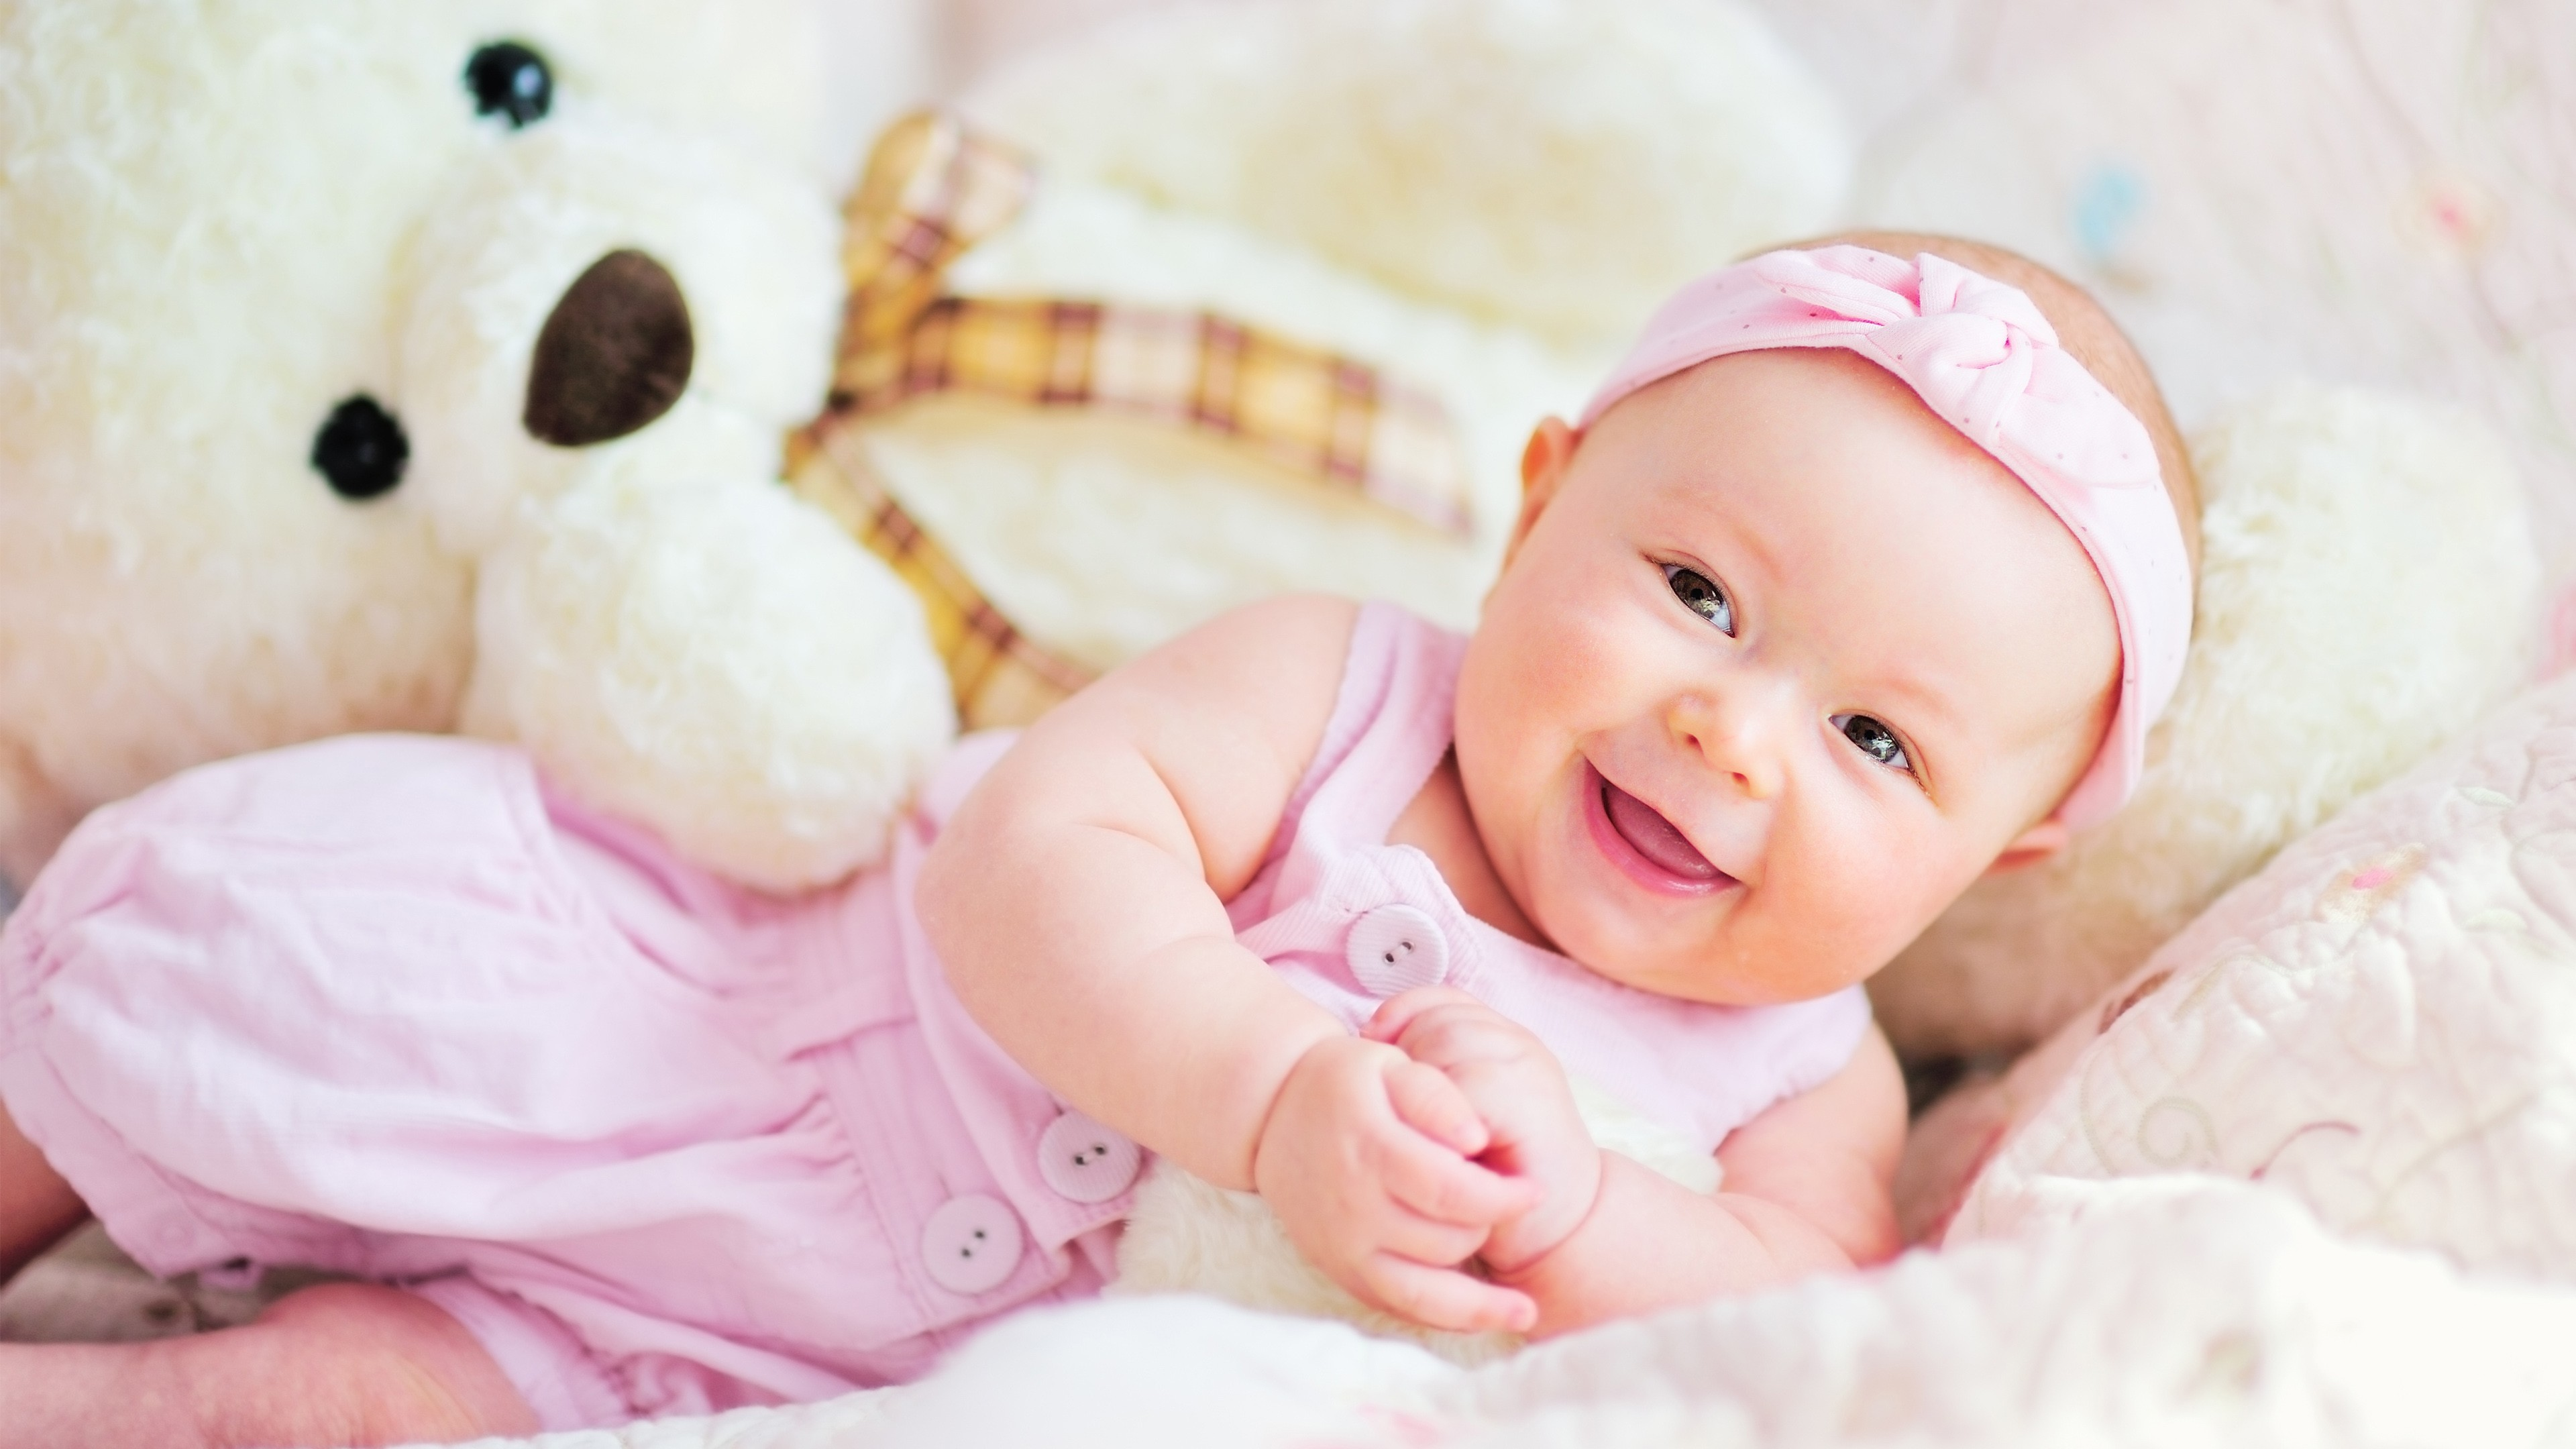 2880x1800 Newborn Baby Boy Pictures Wallpaper Hd Images Of Smartphone Child Pure Love Babies Download